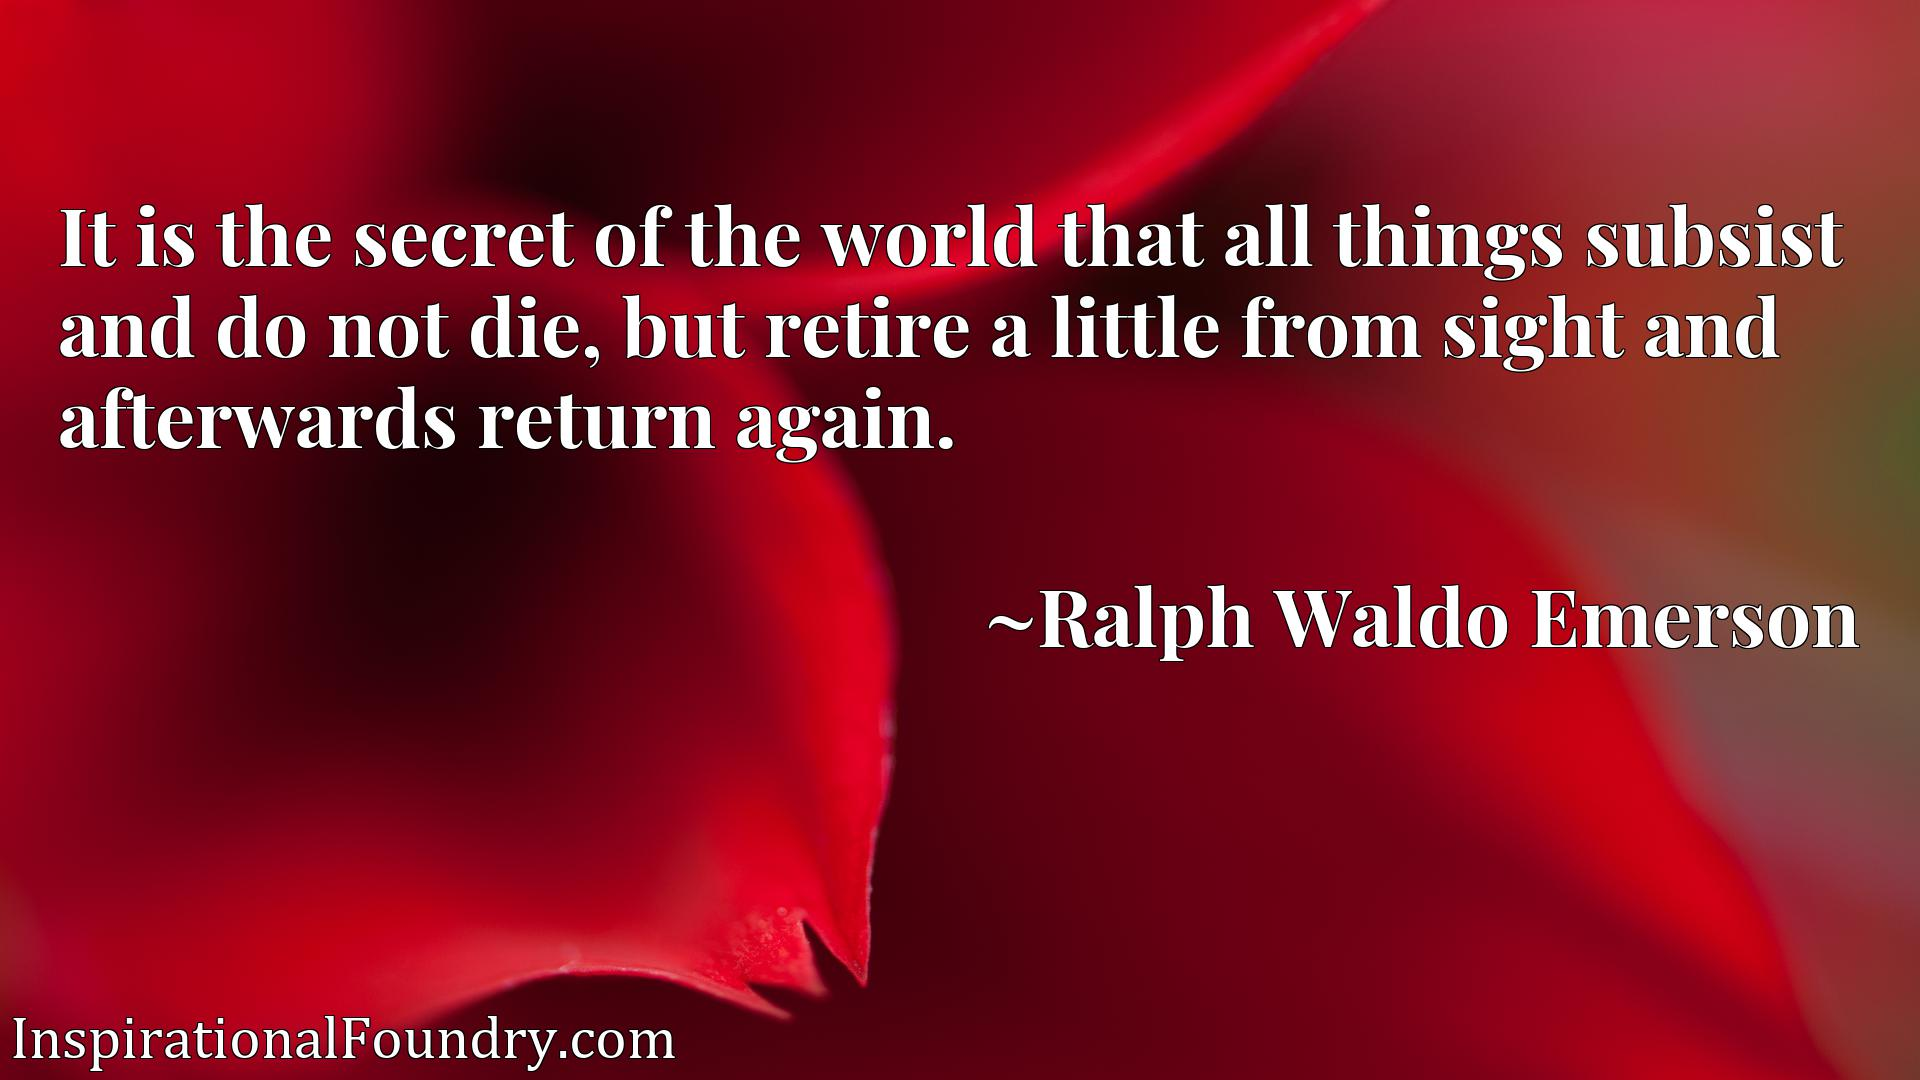 It is the secret of the world that all things subsist and do not die, but retire a little from sight and afterwards return again.